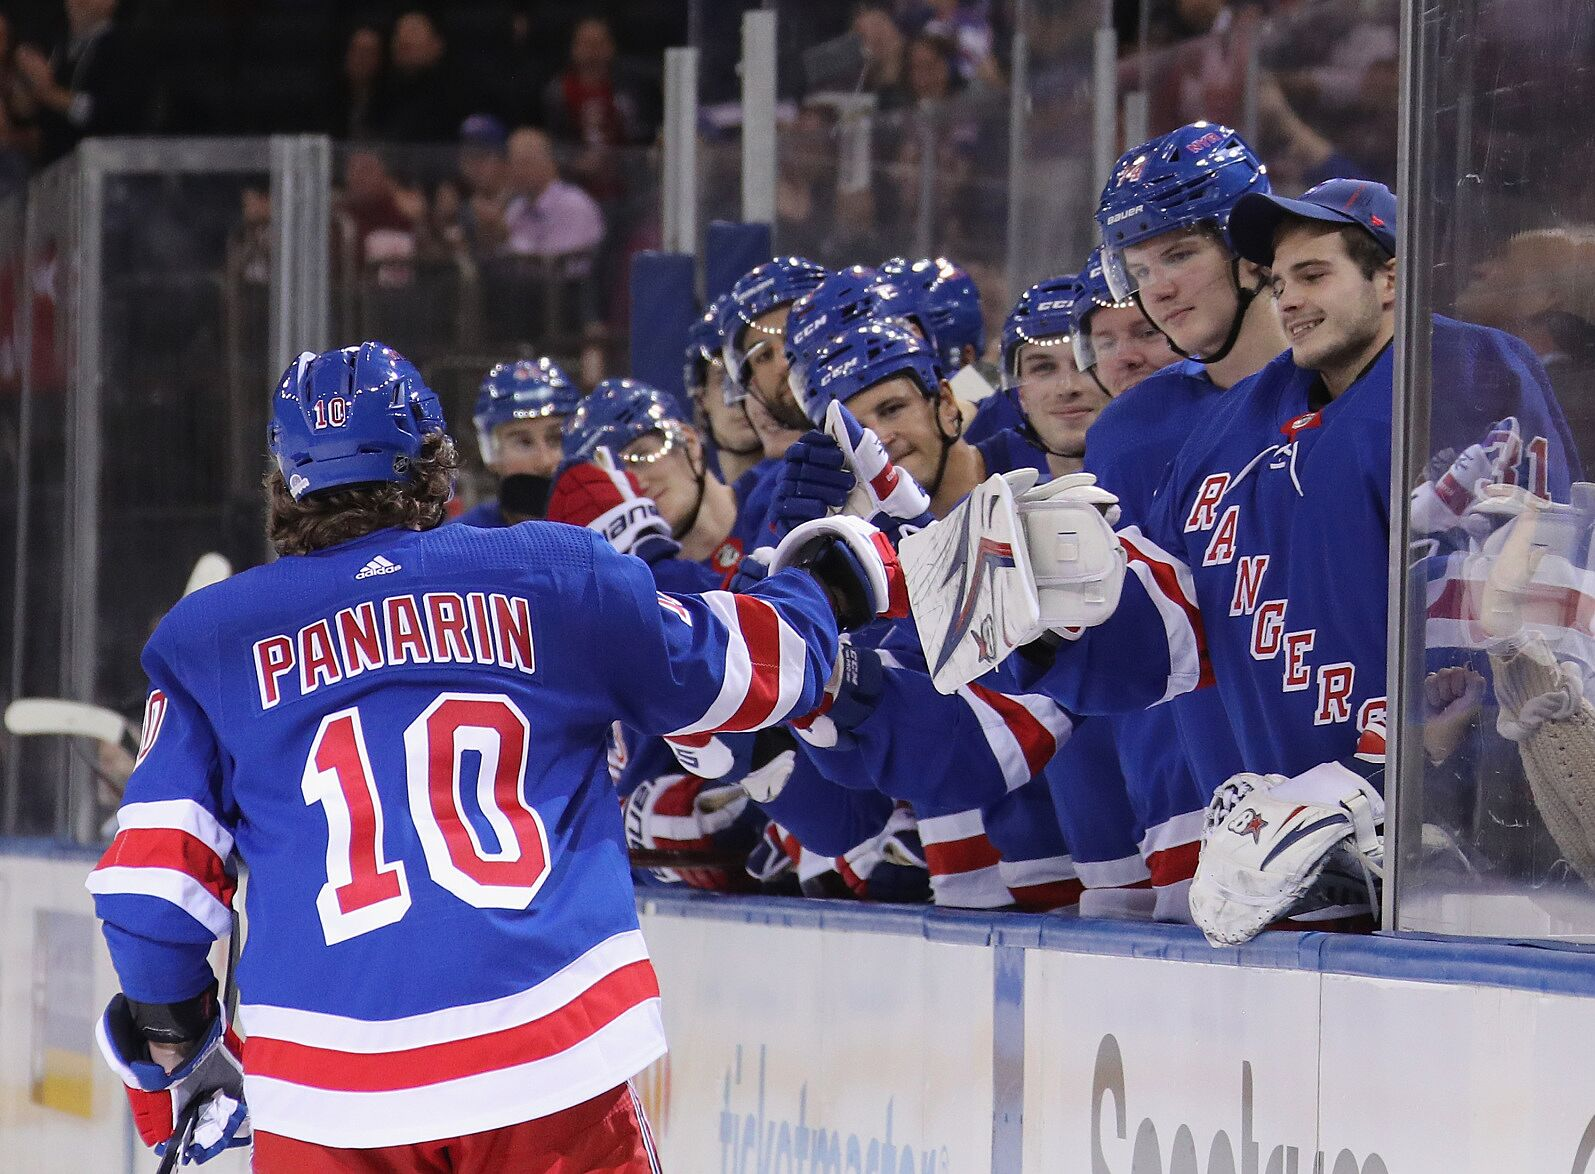 new style ed661 f8e1c New York Rangers: No need to panic about Panarin